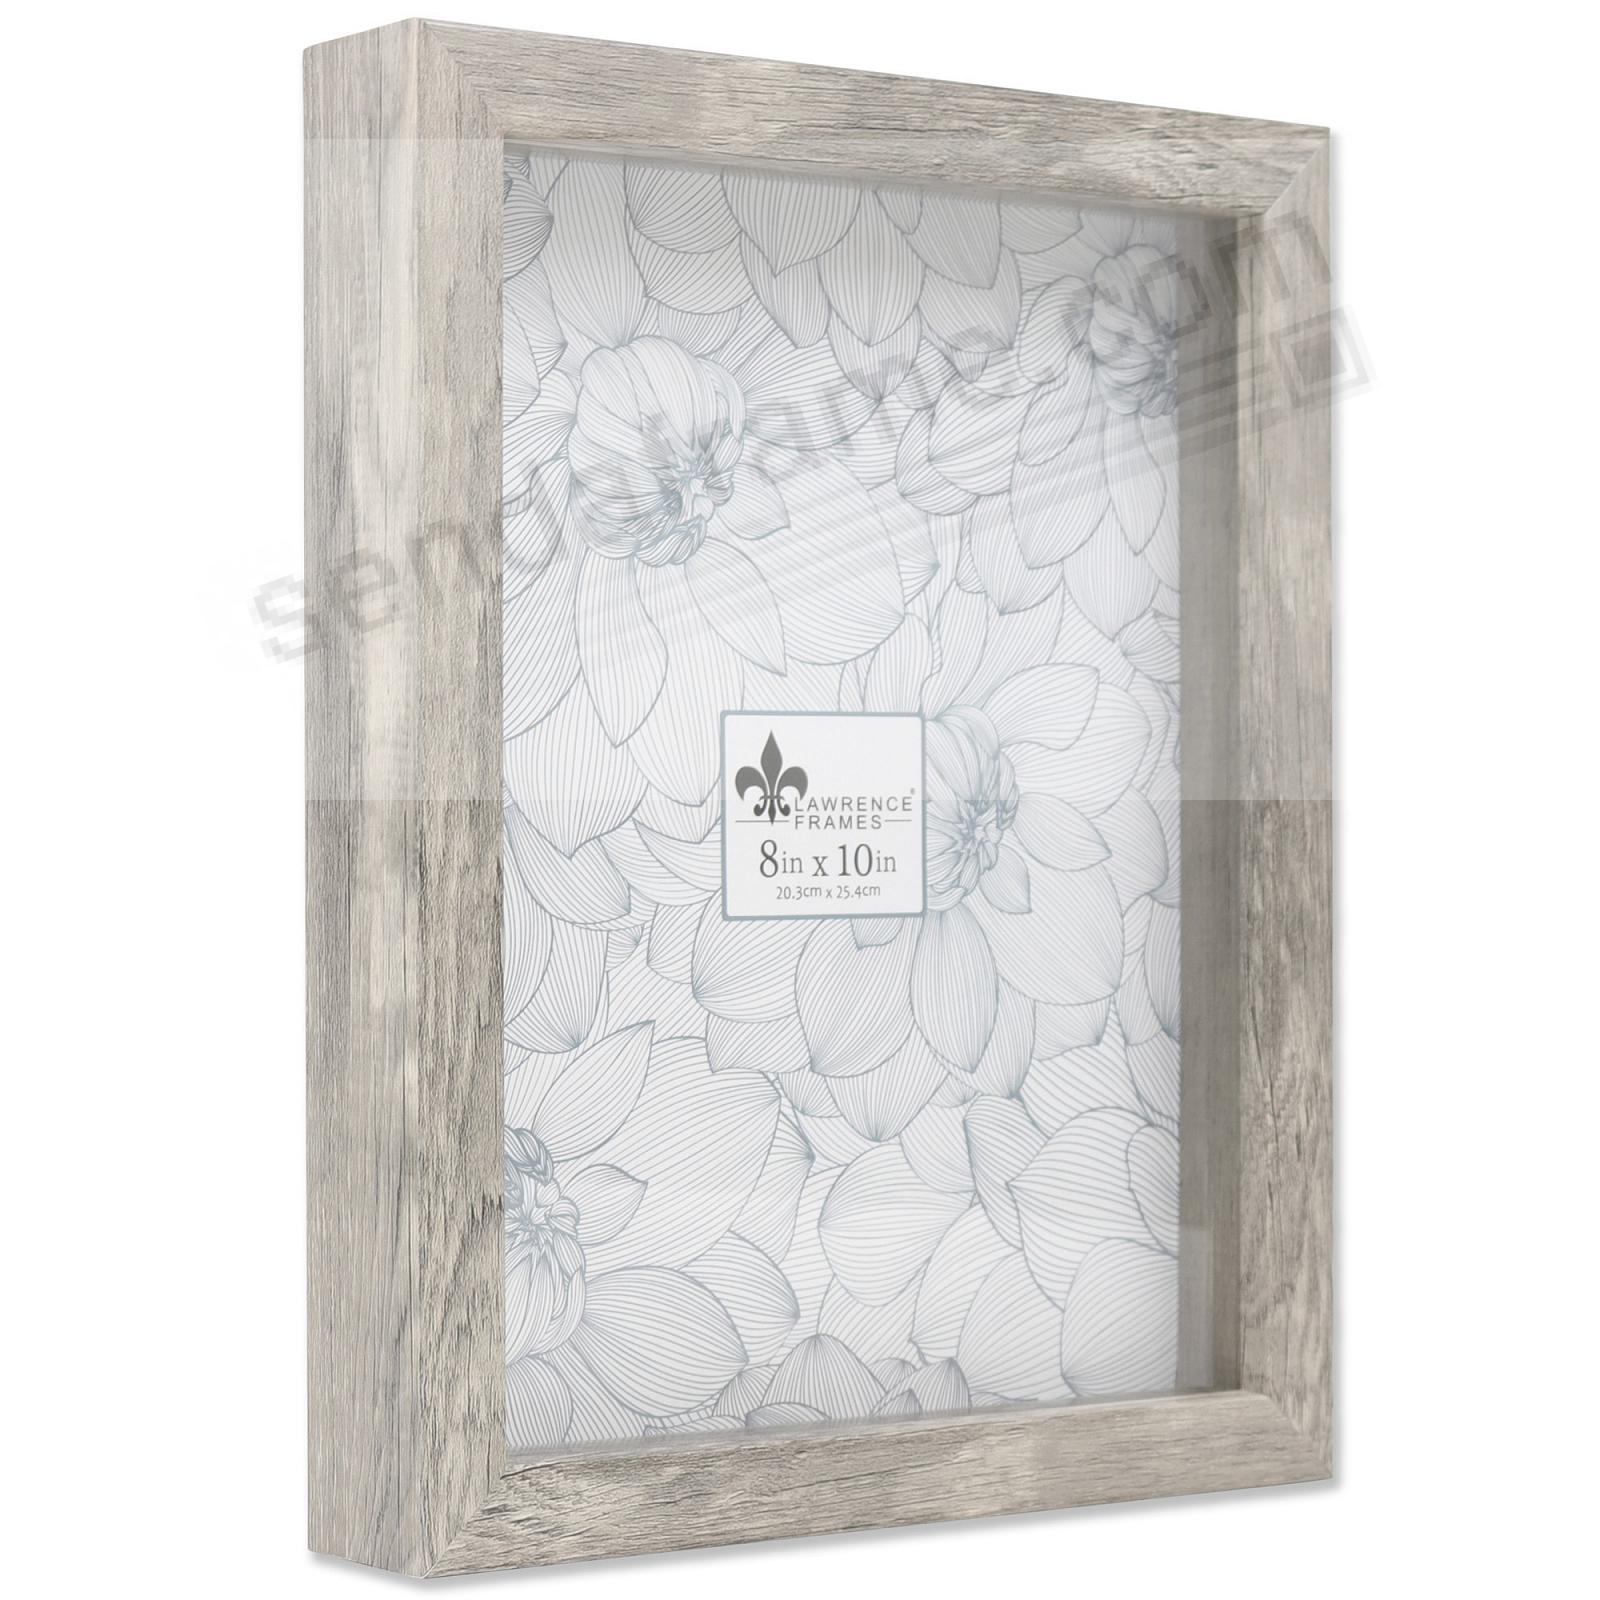 WEATHERED GRAY Trinket Box 8x10 frame ¾in depth by Lawrence®